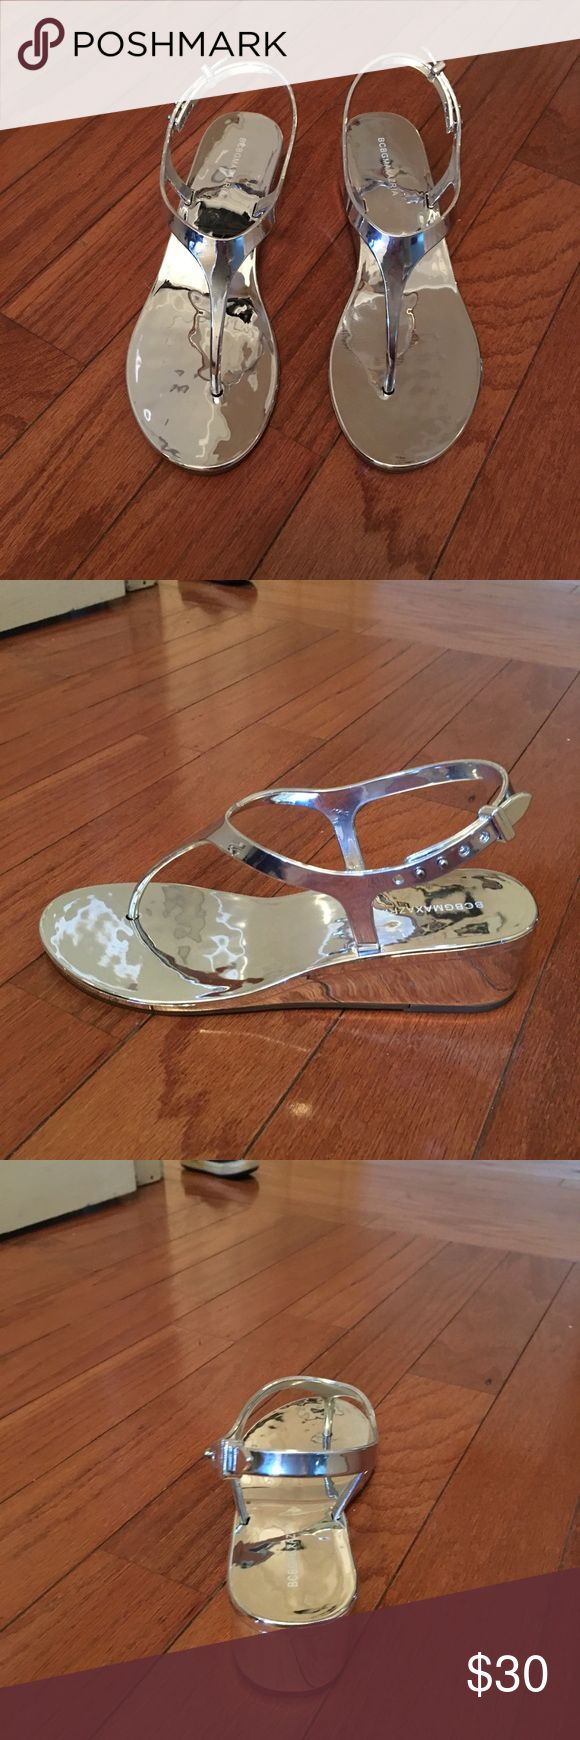 Silver wedge sandals BCBGMAXAZRIA Step into a stylish new season with these elegant, metallic-finished sandals rounding off your looks.  Thong toe. Mid heel. Mirrored metallic finish throughout. Ankle strap with adjustable side-buckle closure. BCBGMaxAzria Shoes Sandals